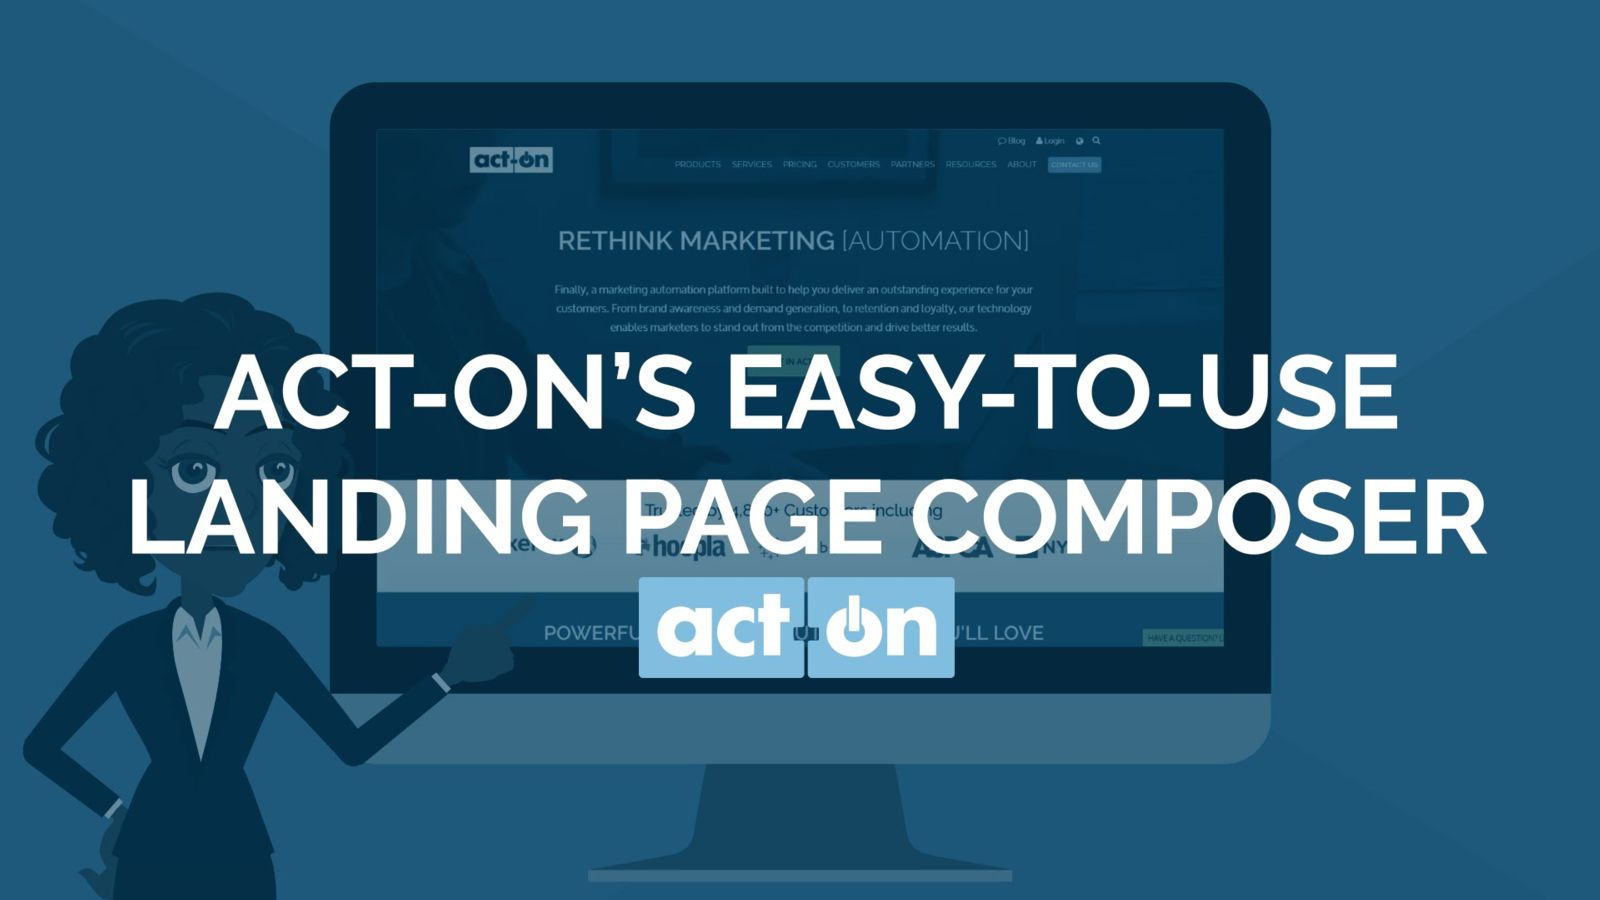 Act-On landing page and form composer.